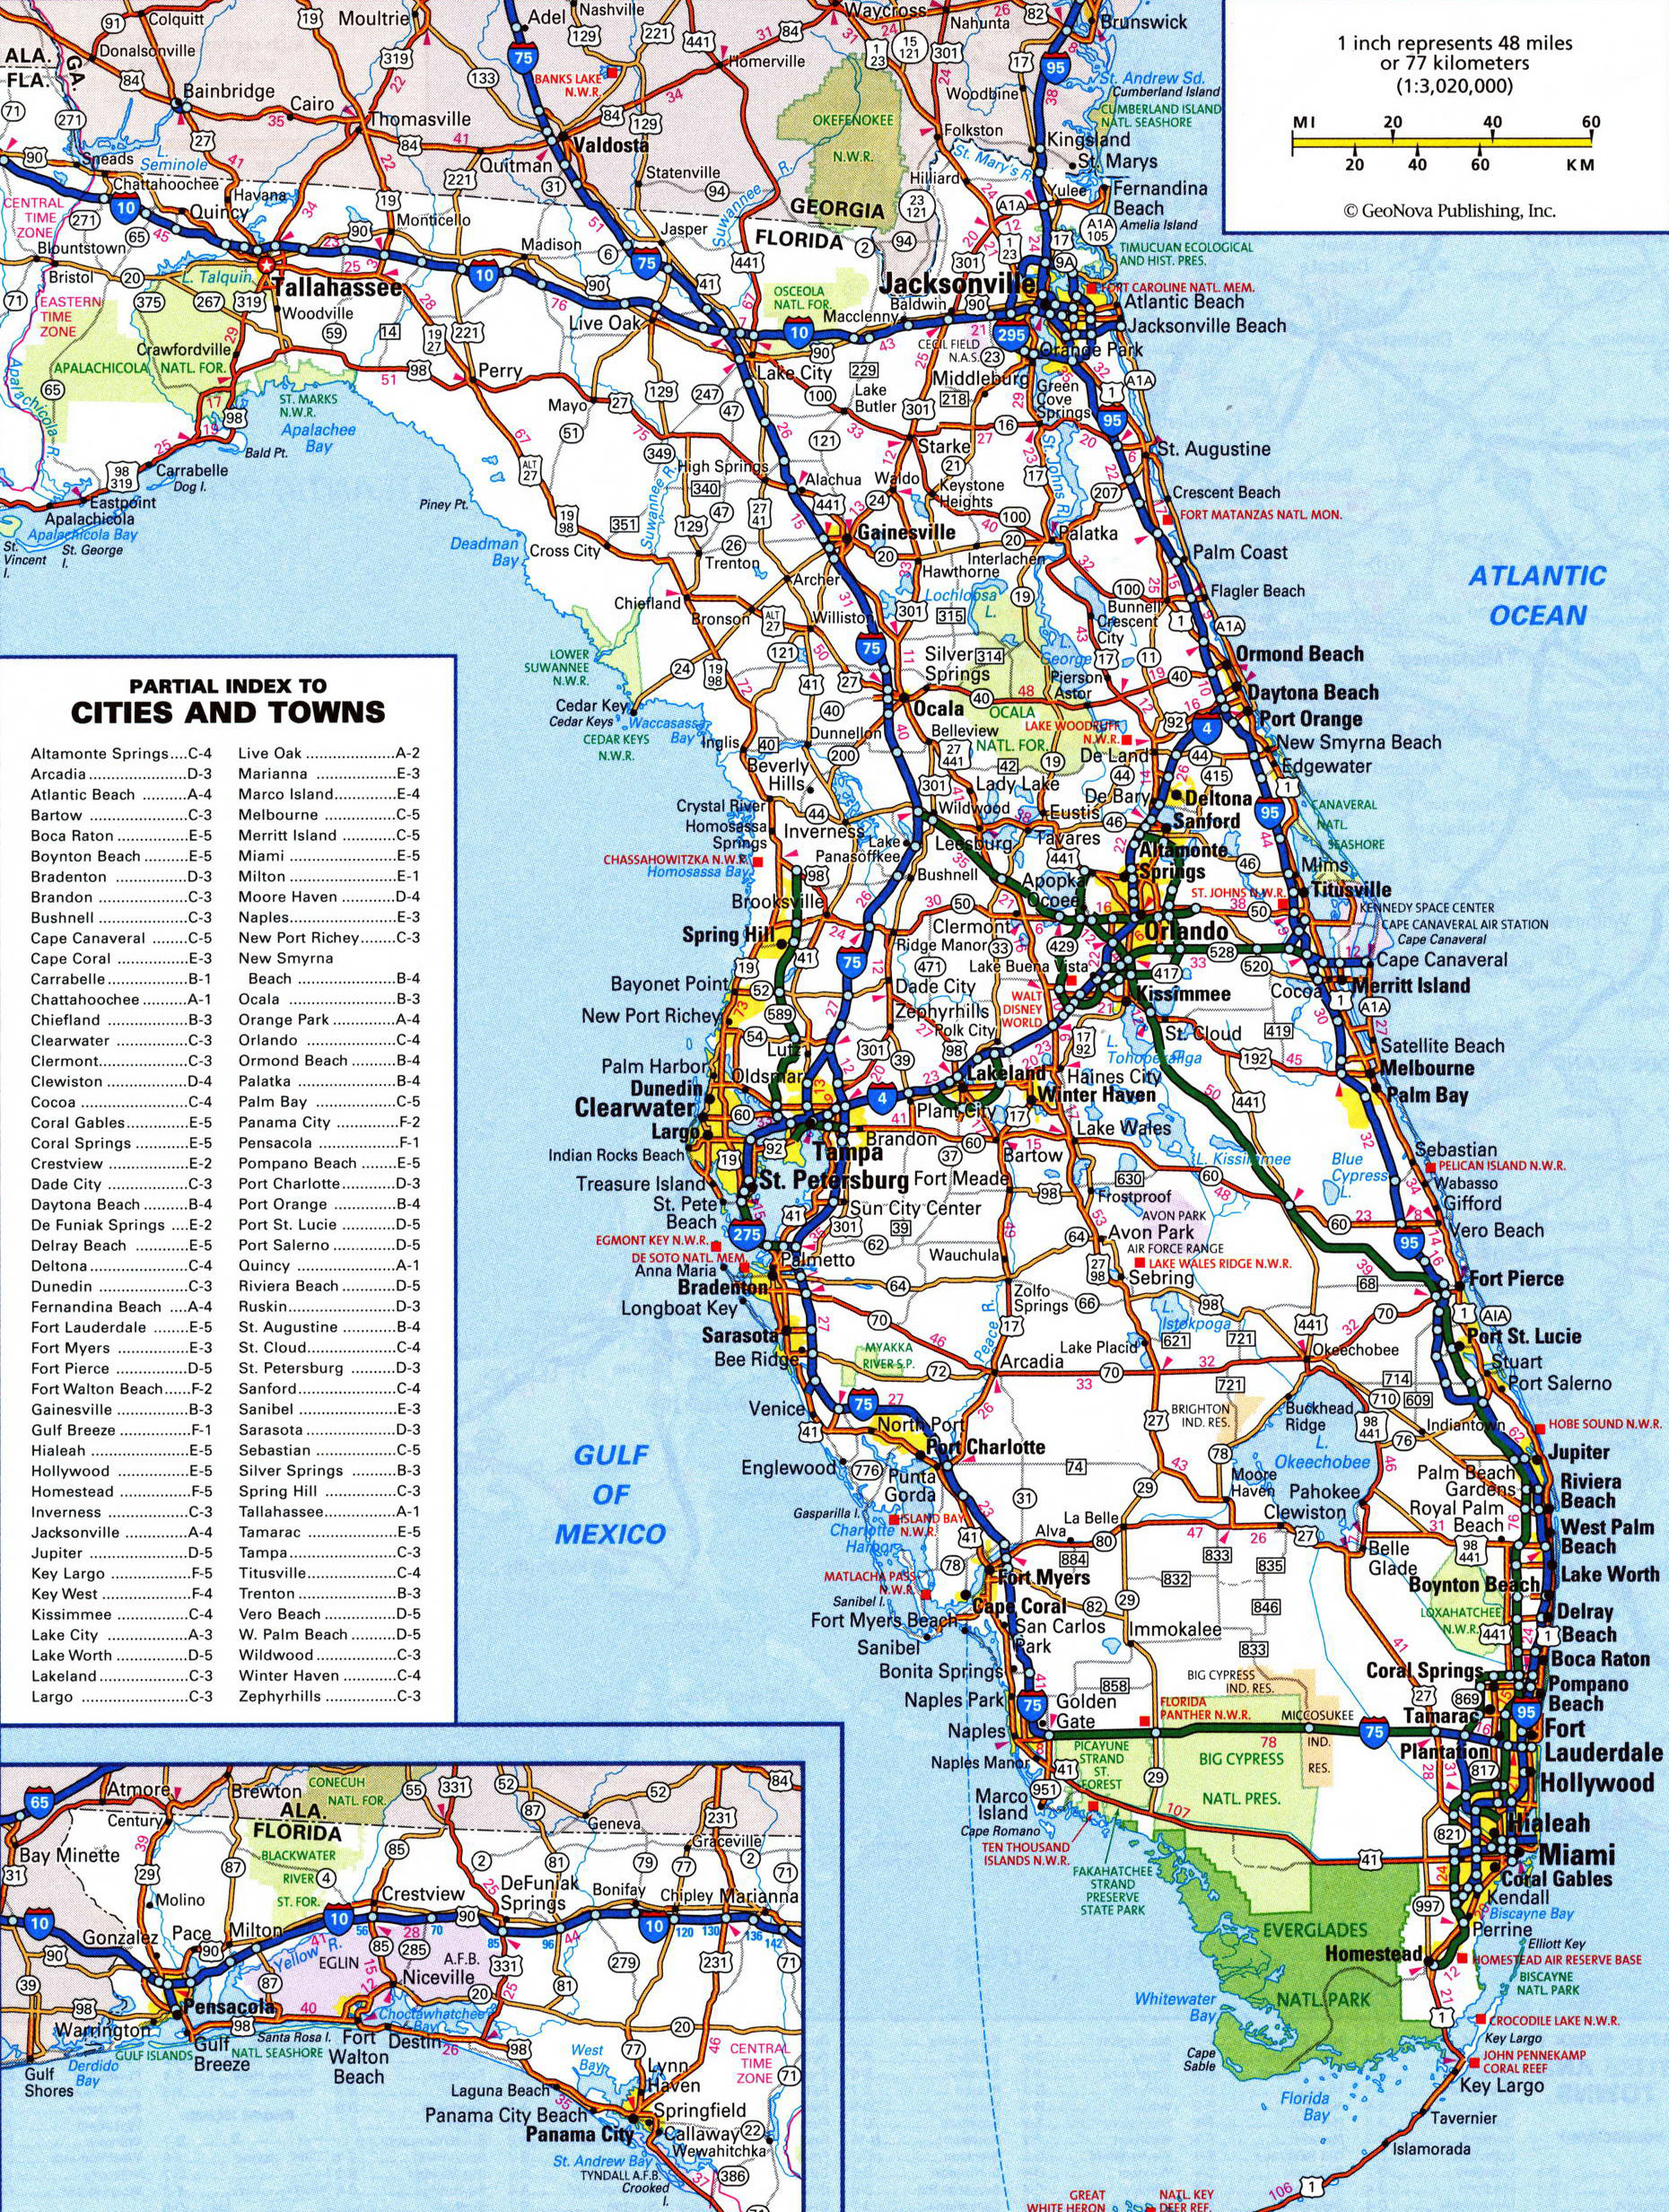 Www Map Of Florida.Large Detailed Roads And Highways Map Of Florida State Vidiani Com